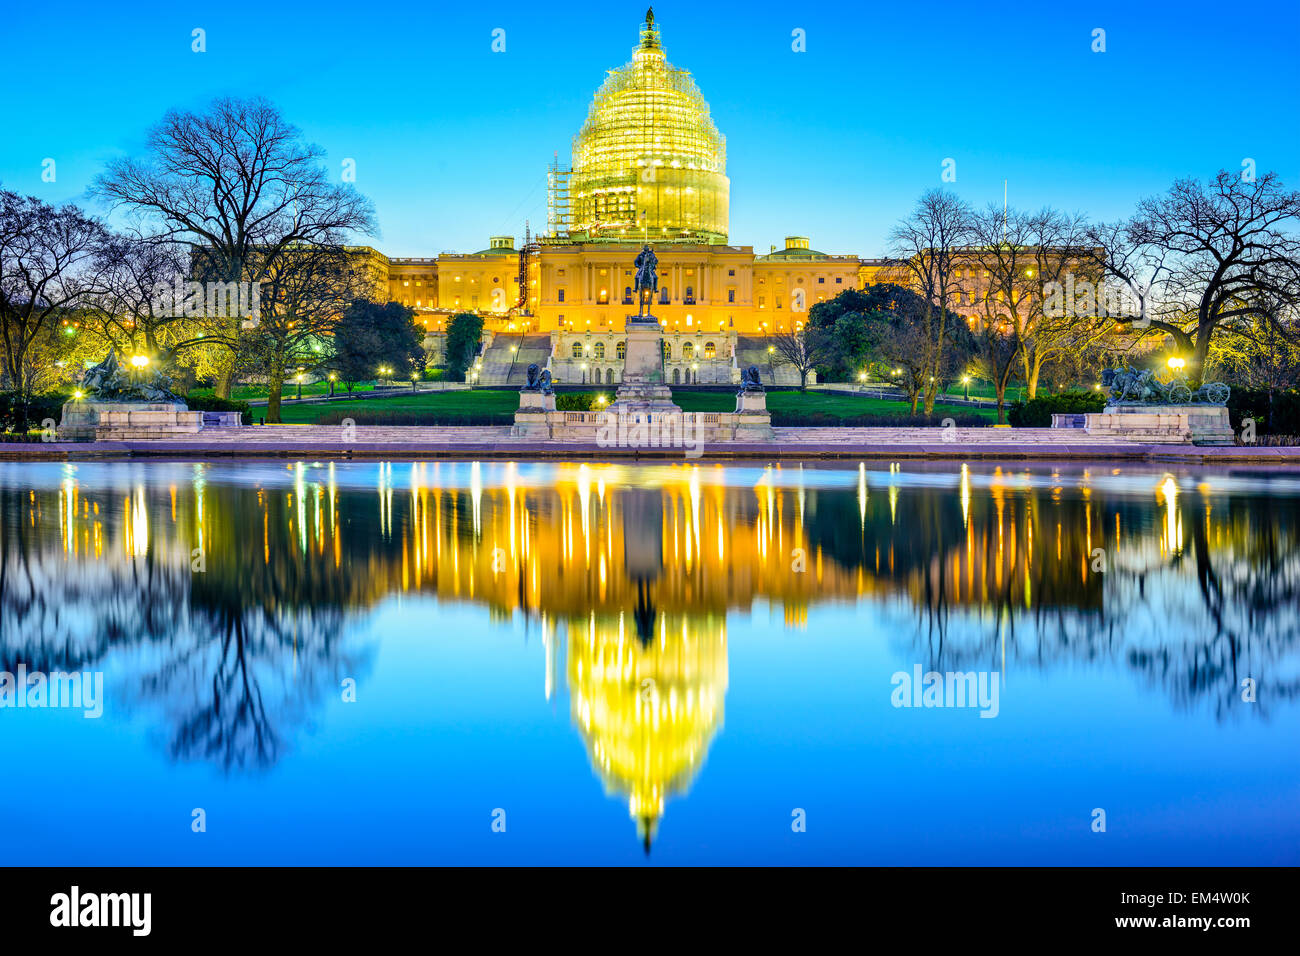 Washington, D.C. at the Capitol Building. - Stock Image